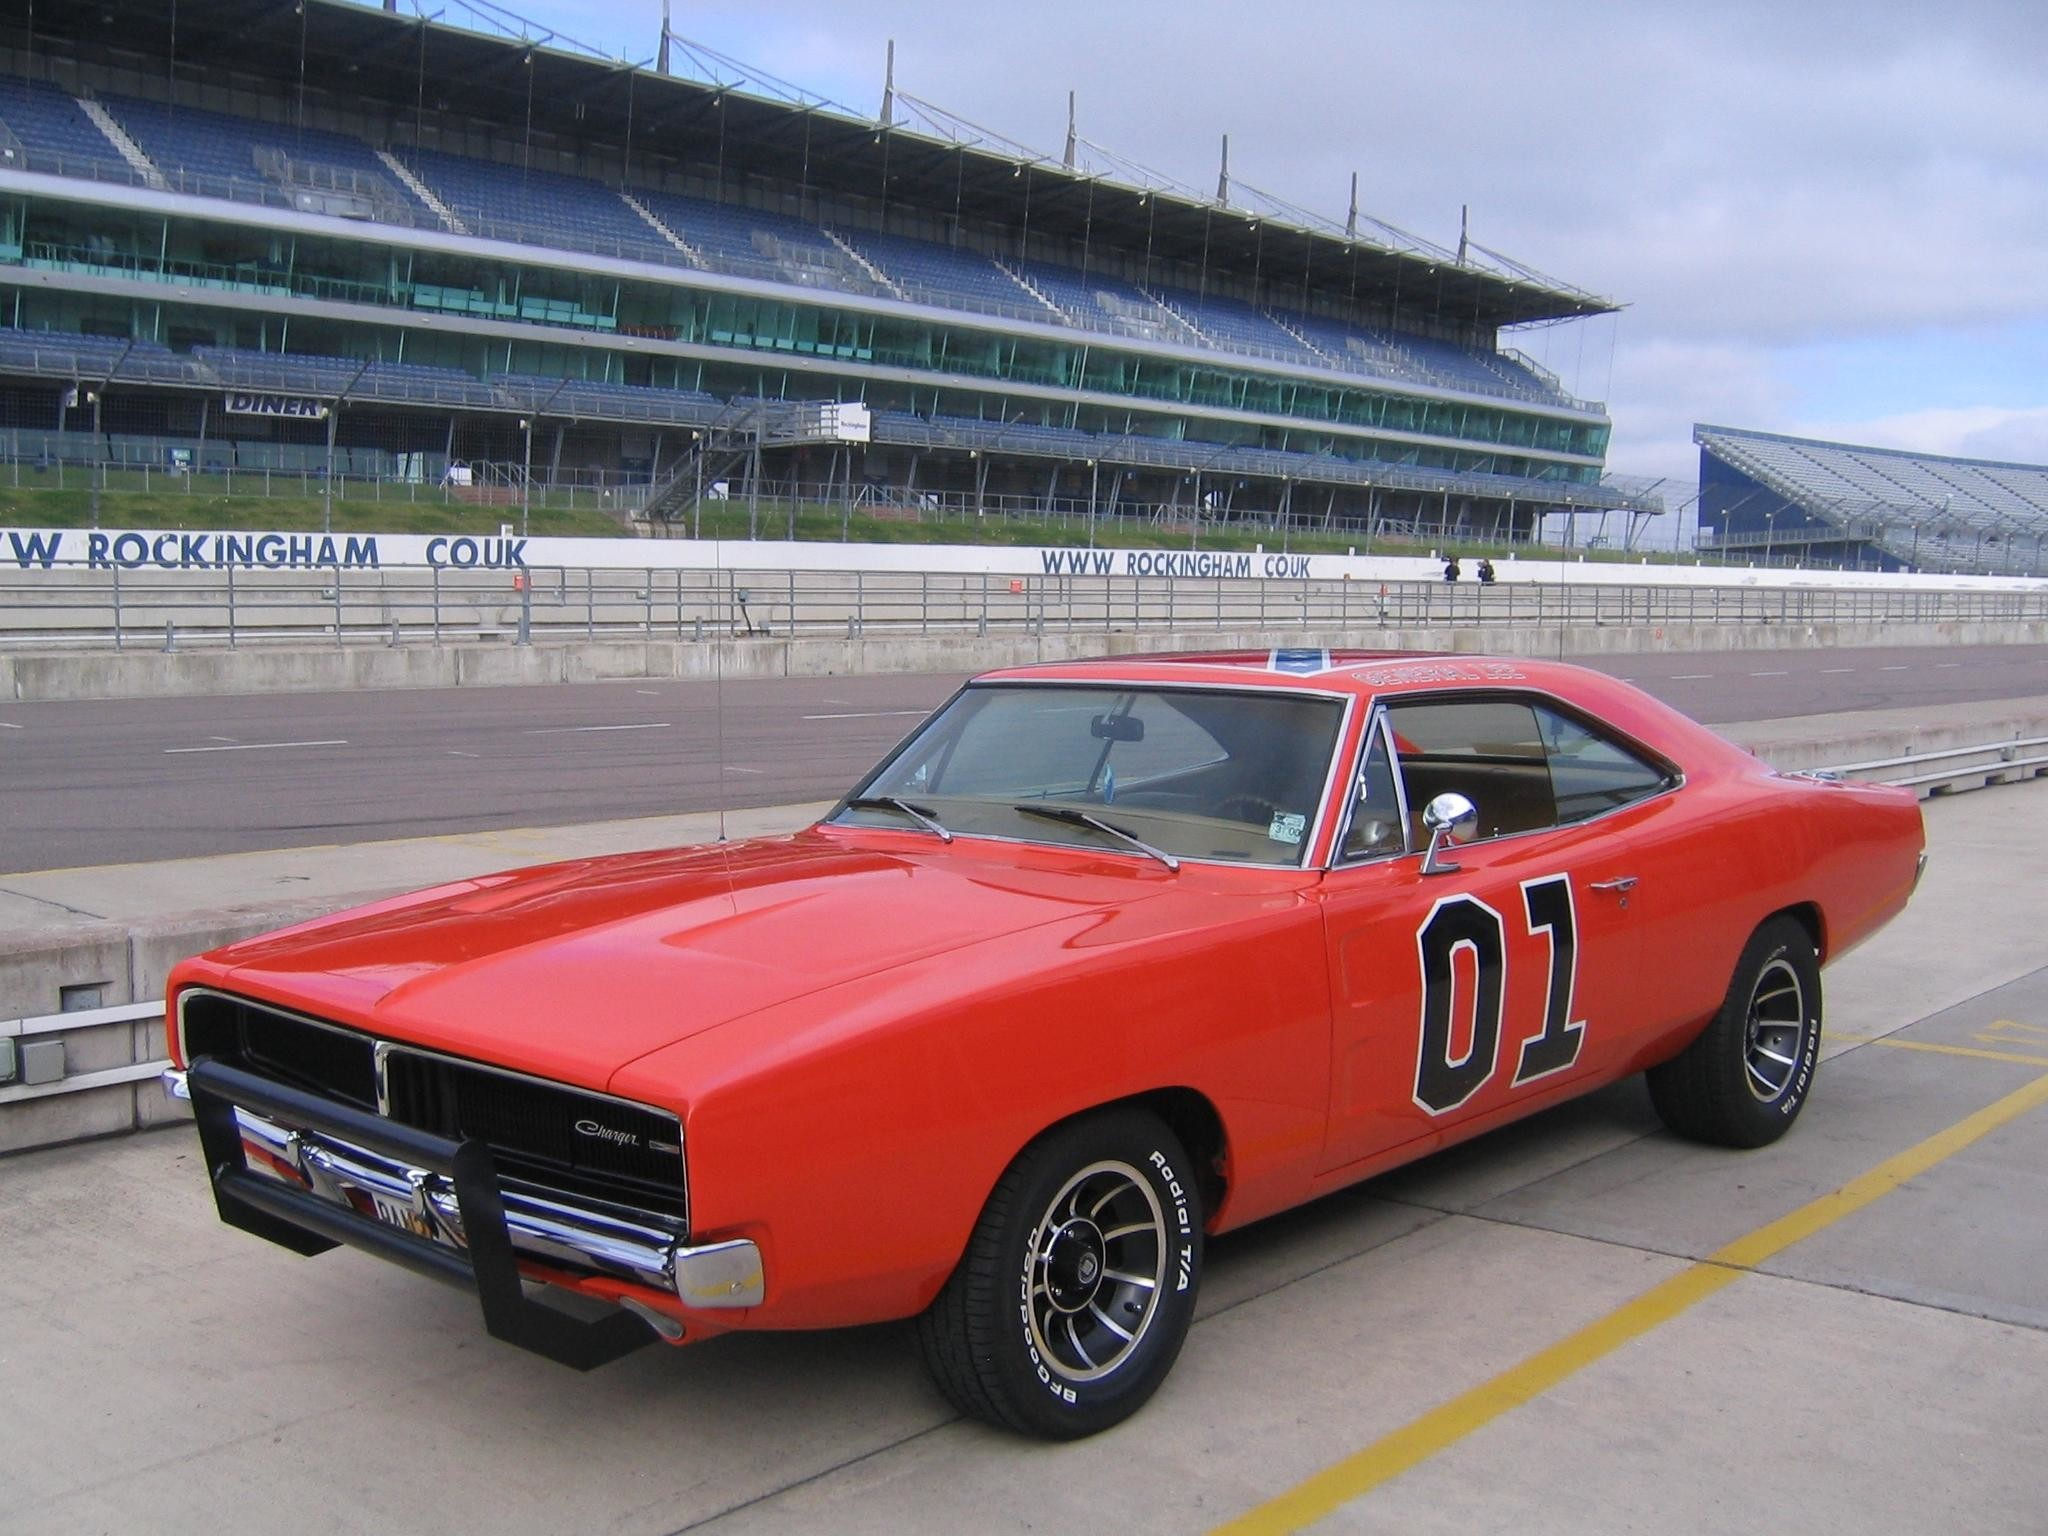 2048x1536 More wallpaper collections. 68 Wallpapers. general lee wallpaper